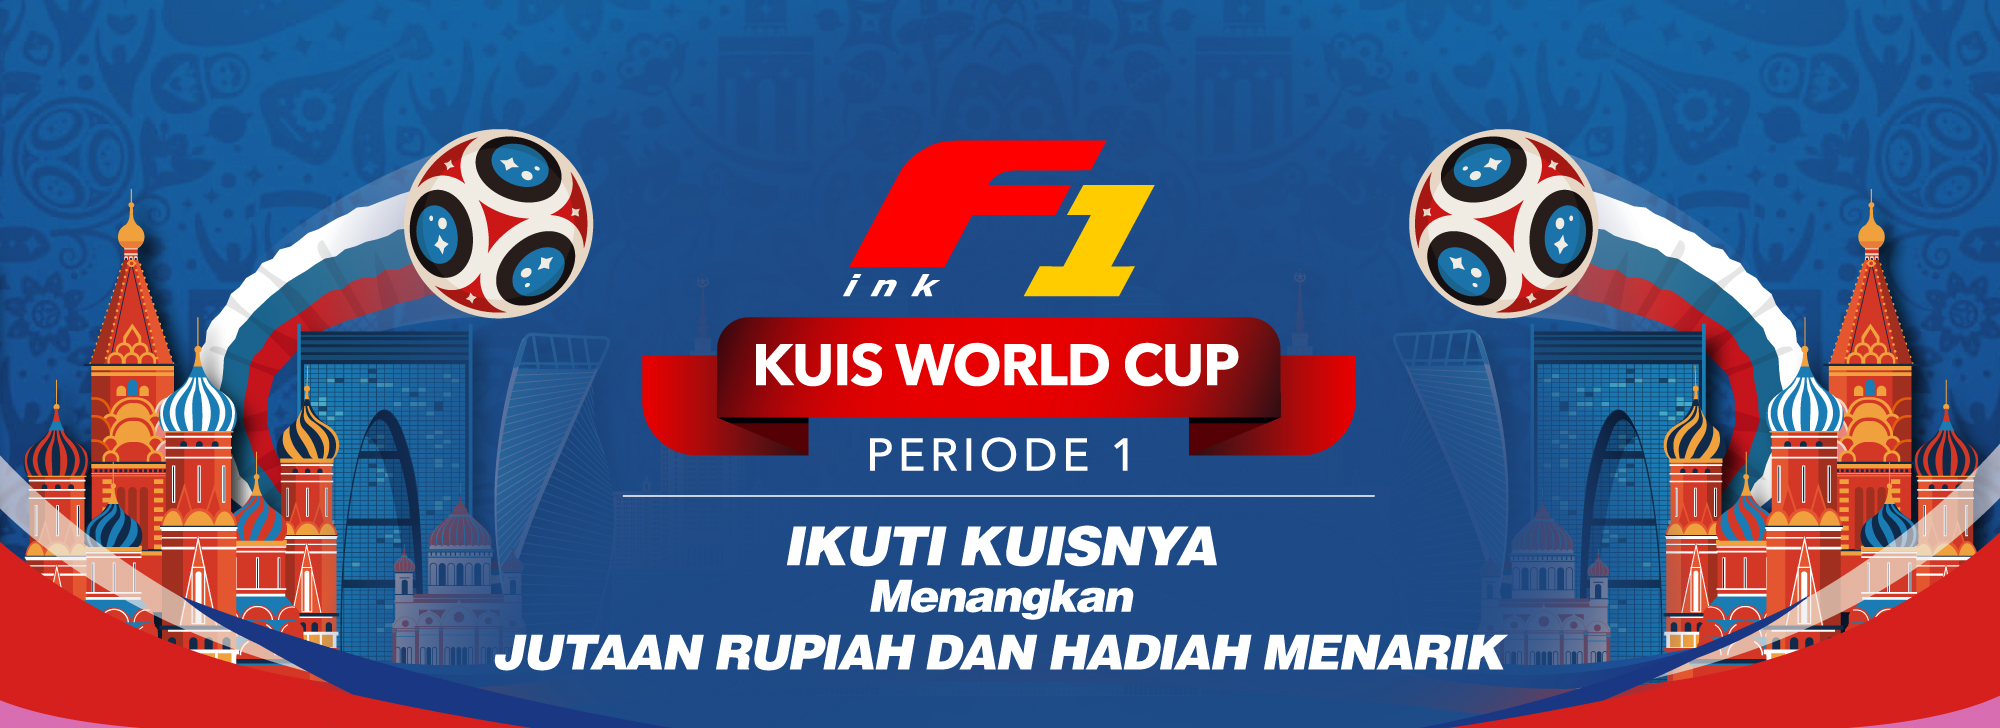 BANNER-WEB-world-cup